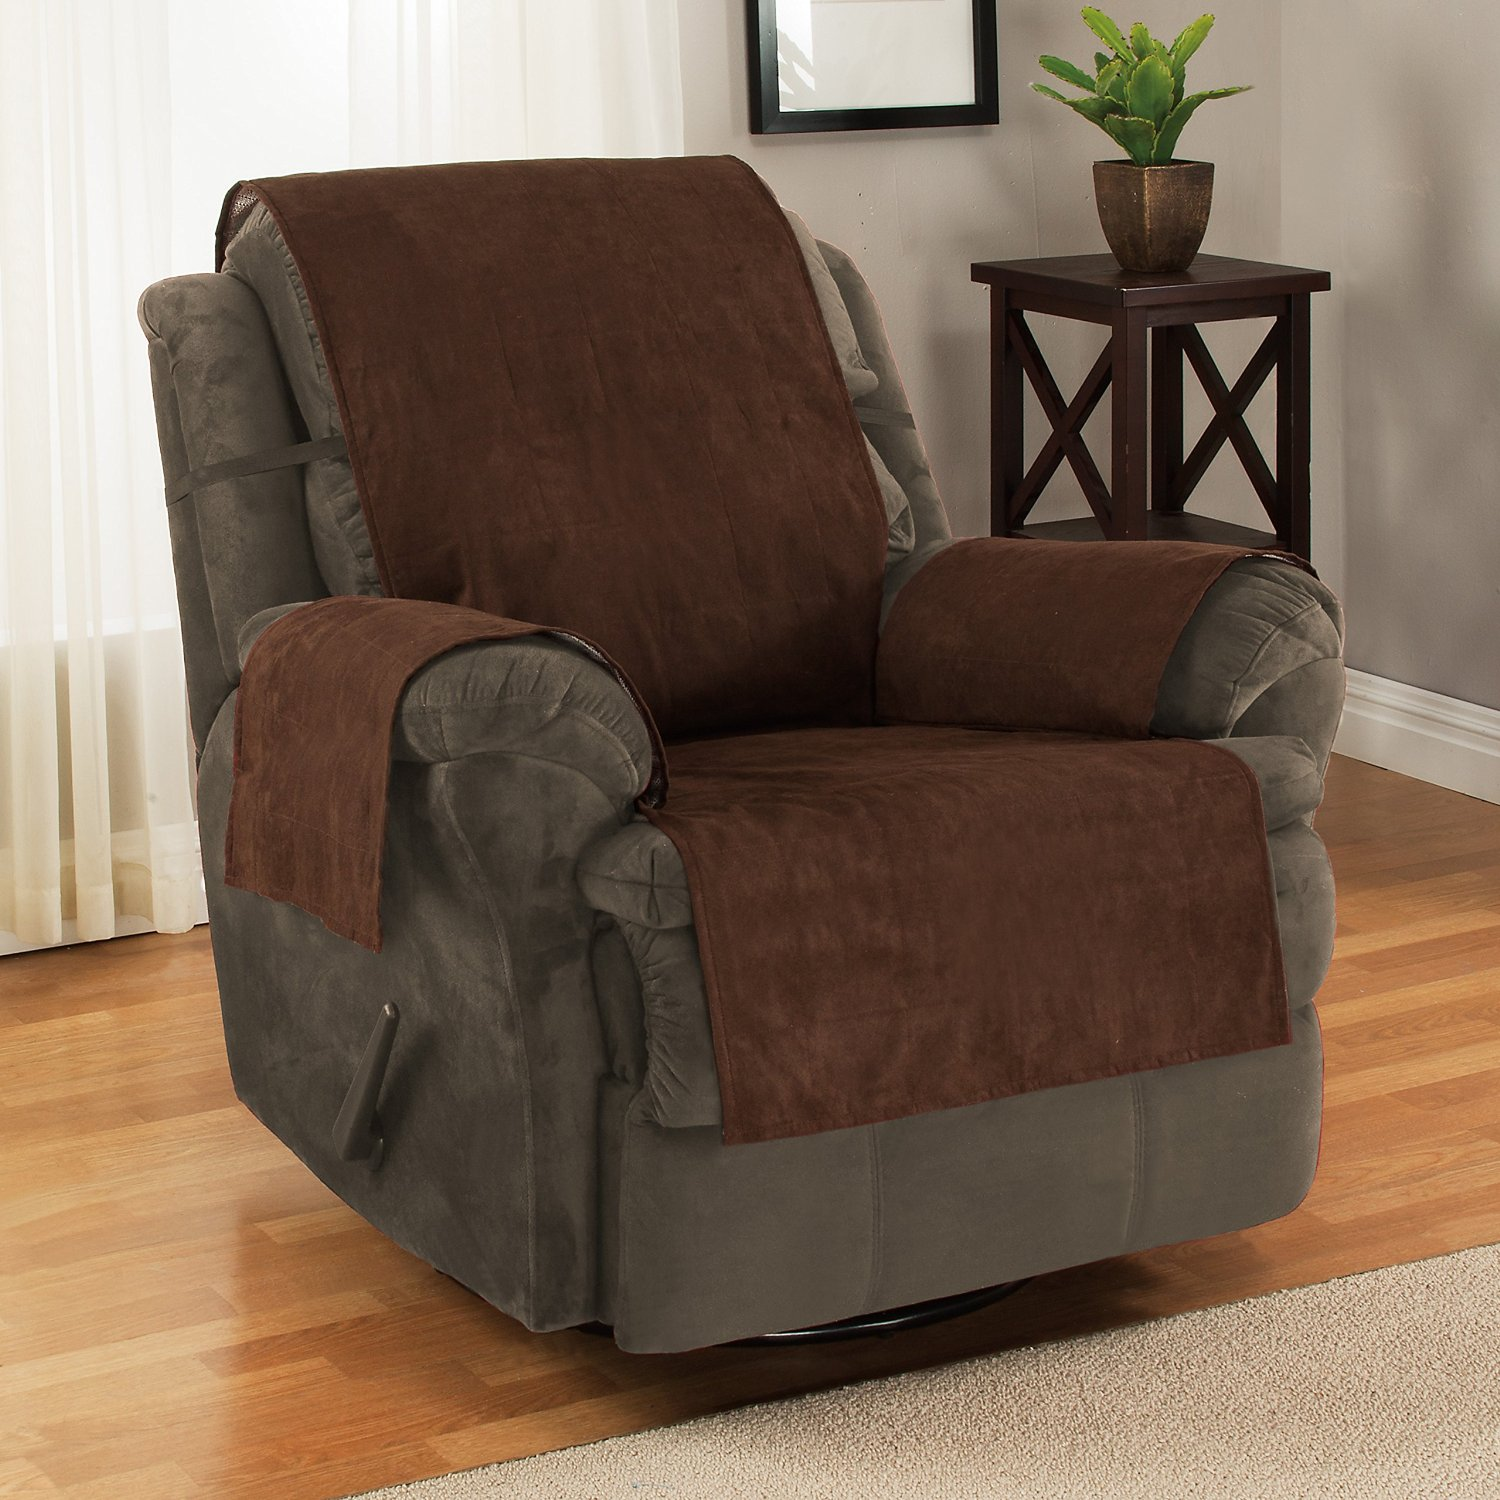 Leather Lounge Protector Australia Lazyboy Recliners Review And Guide Online